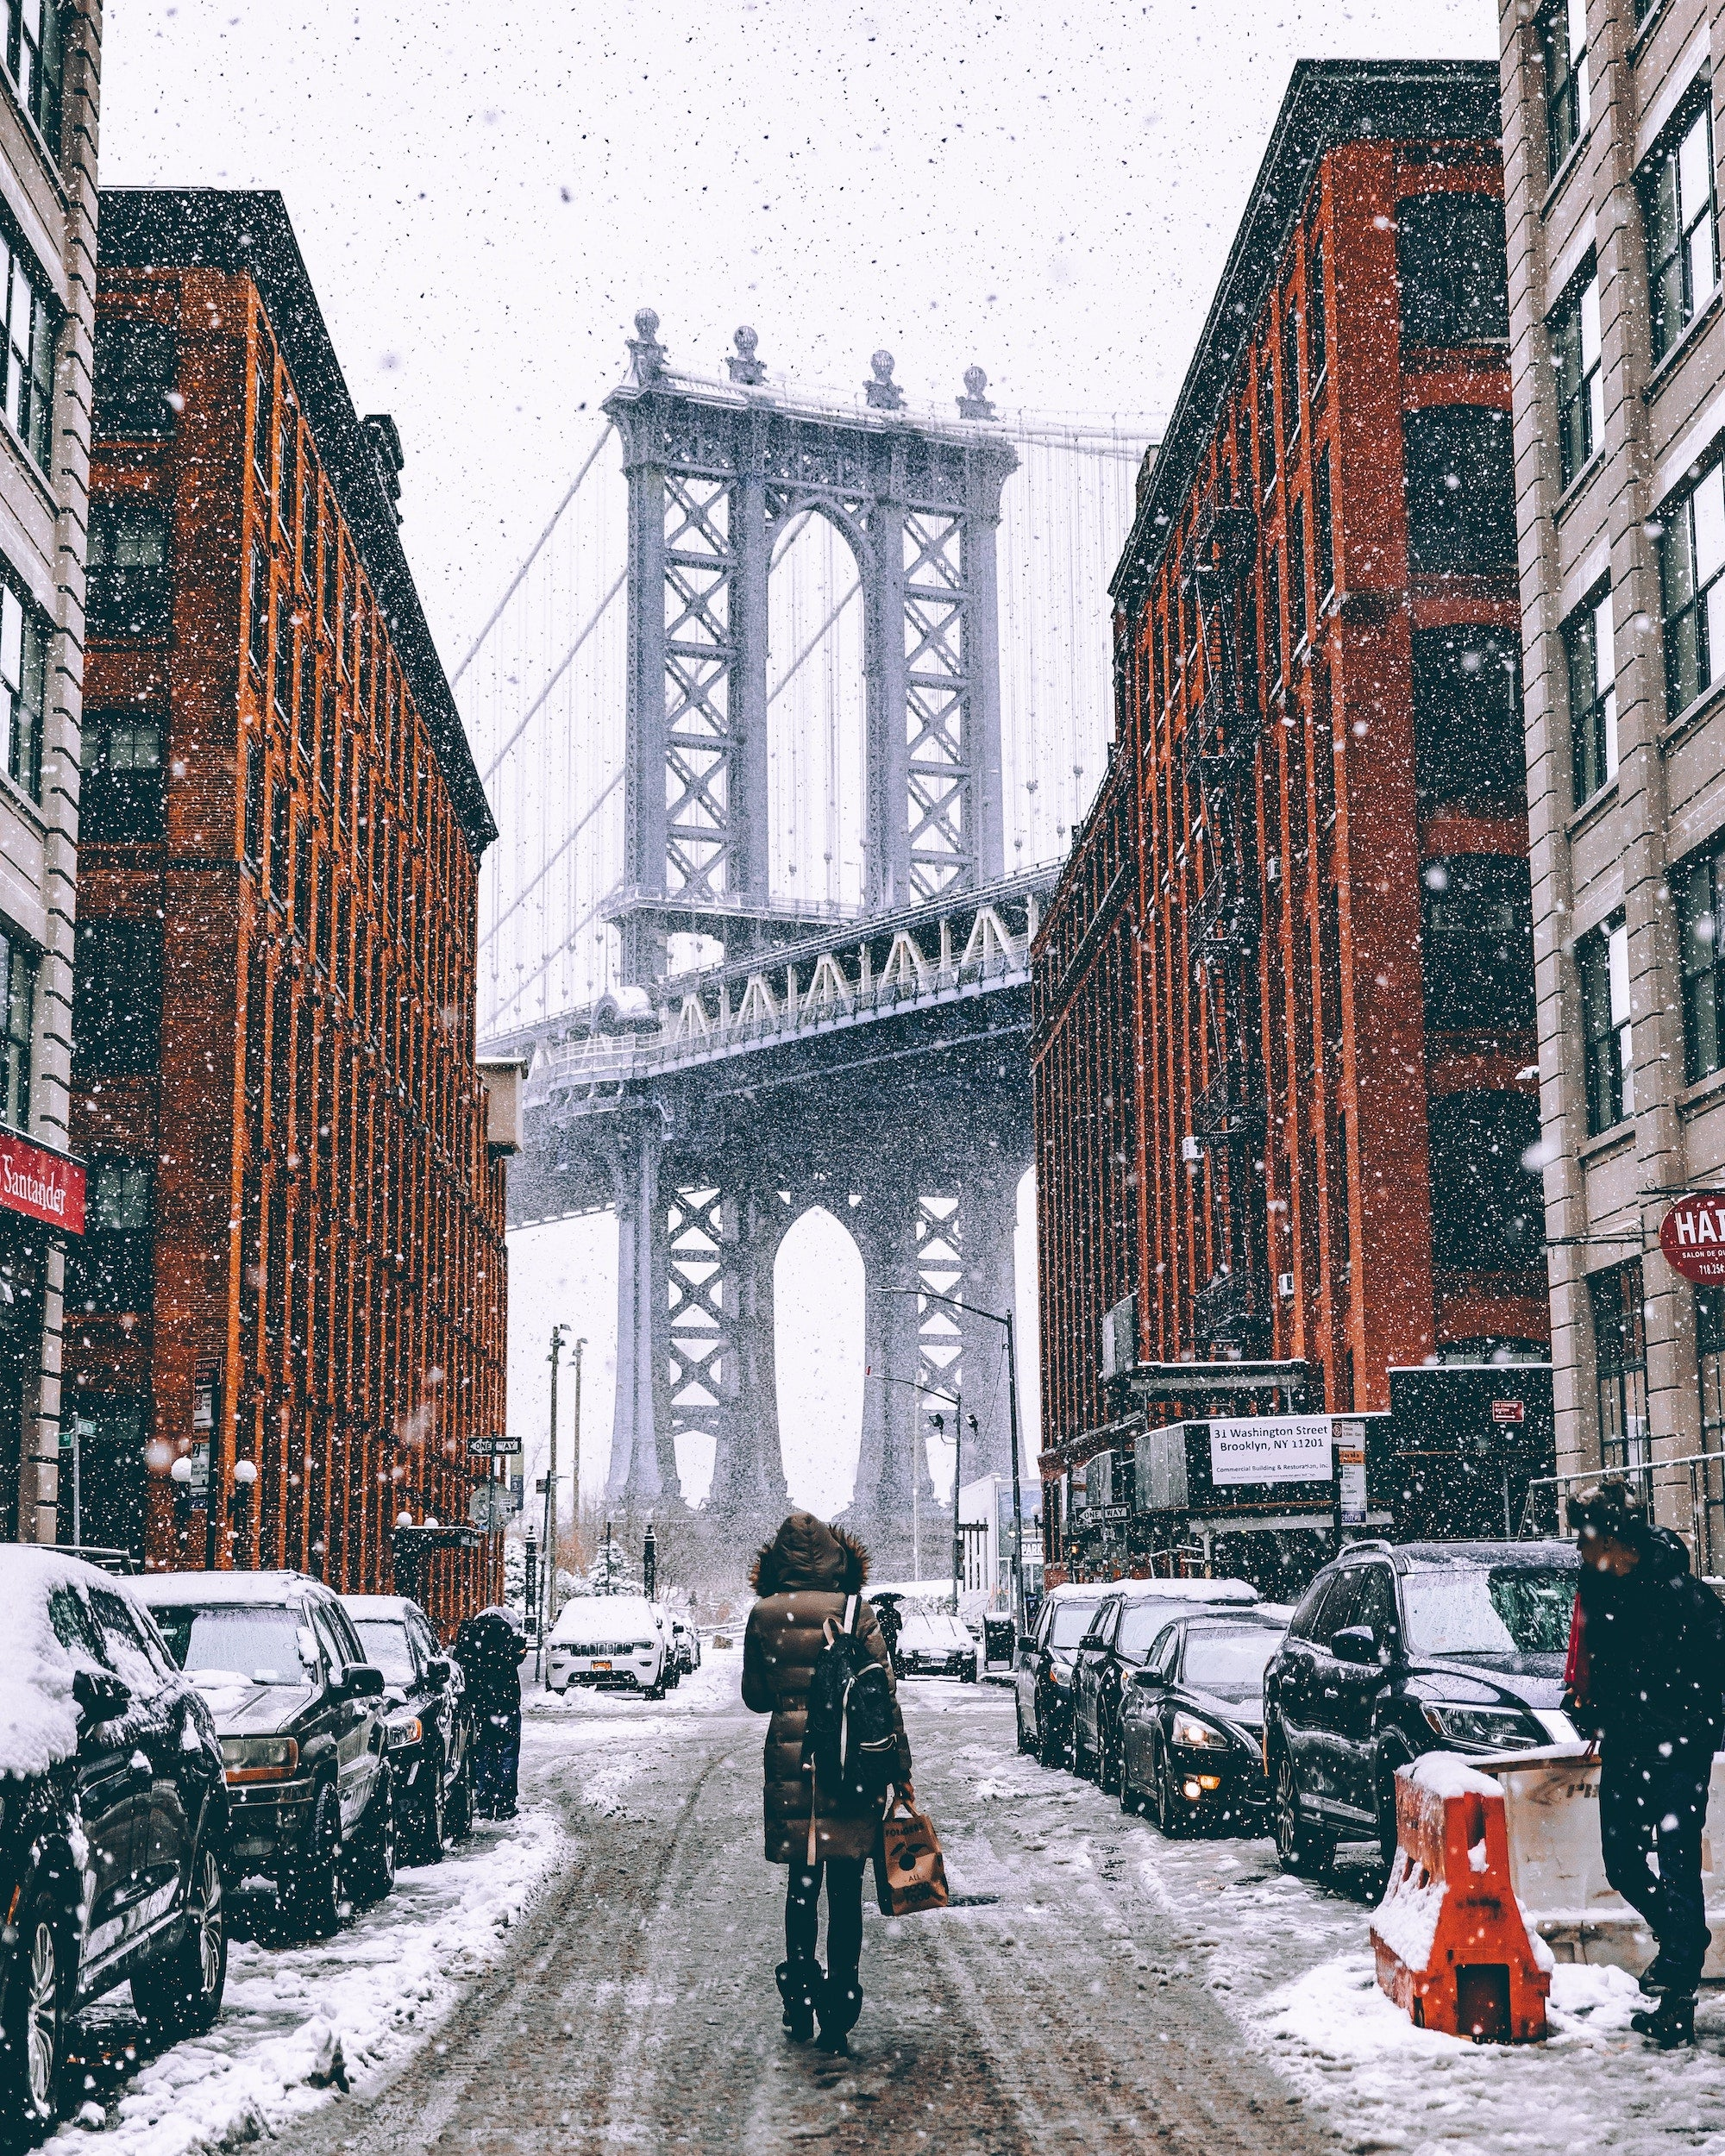 woman standing in the middle of a snowy street with bridge in the background